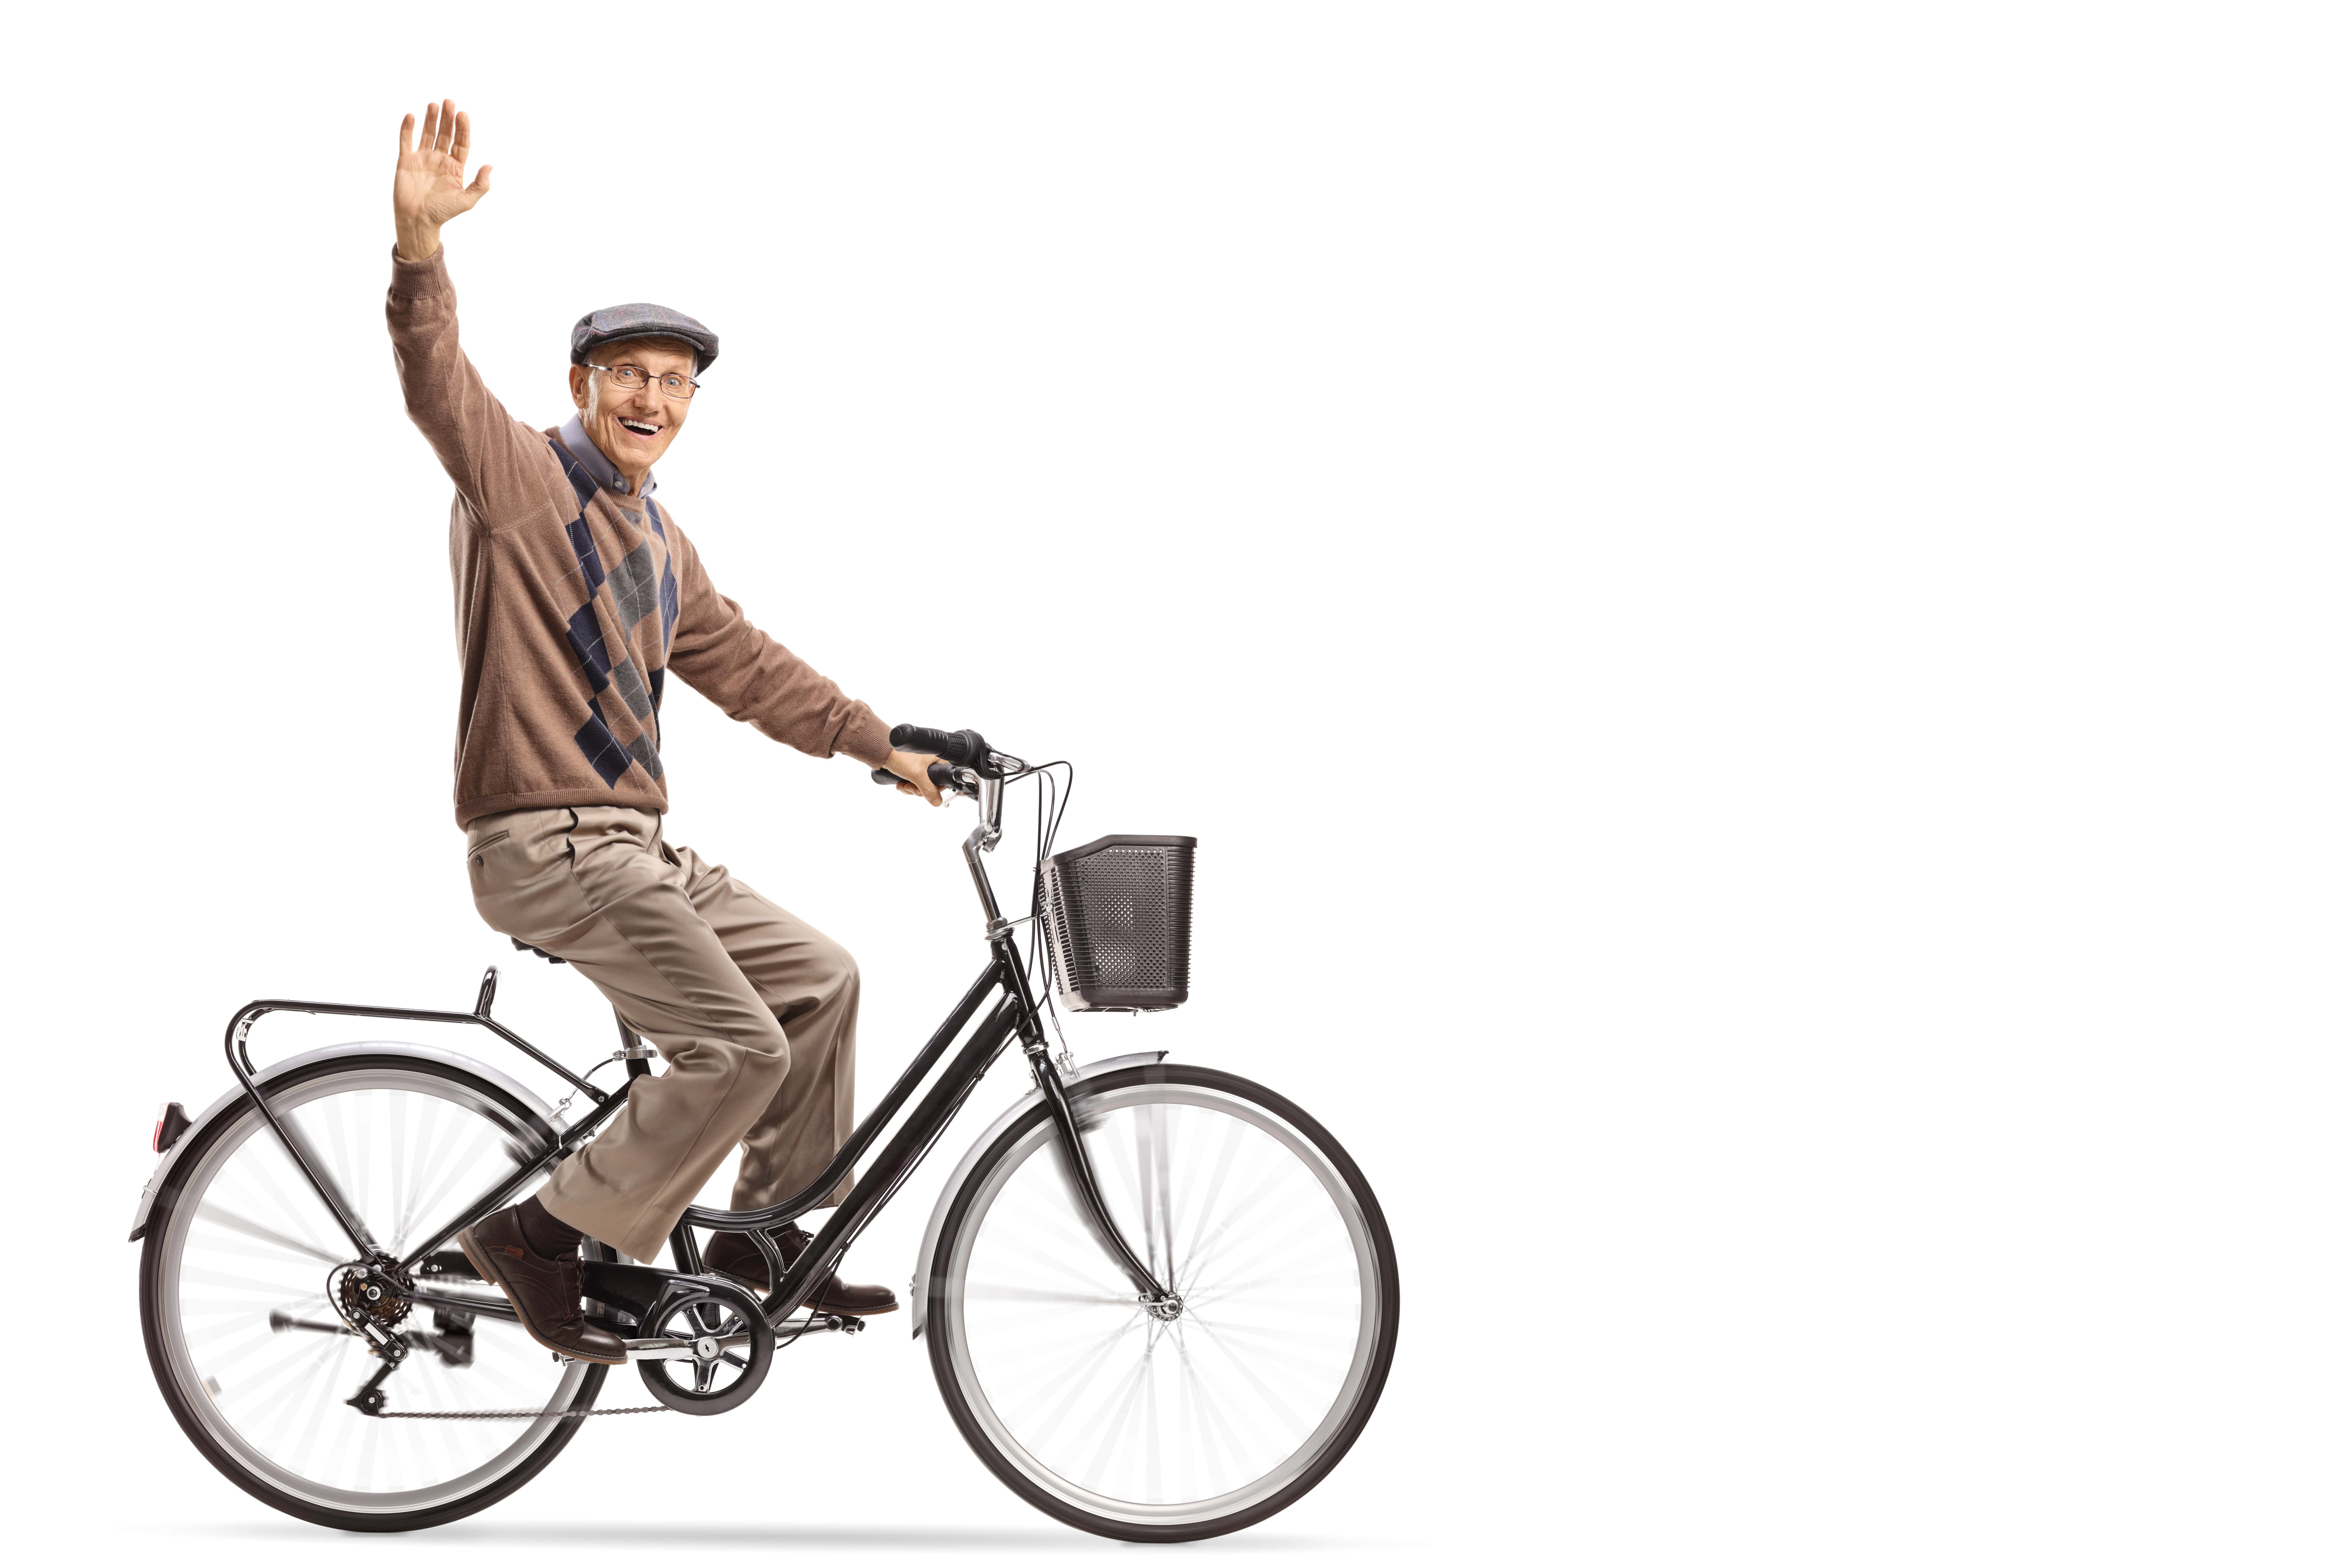 Older man riding a vintage bicycle and waving